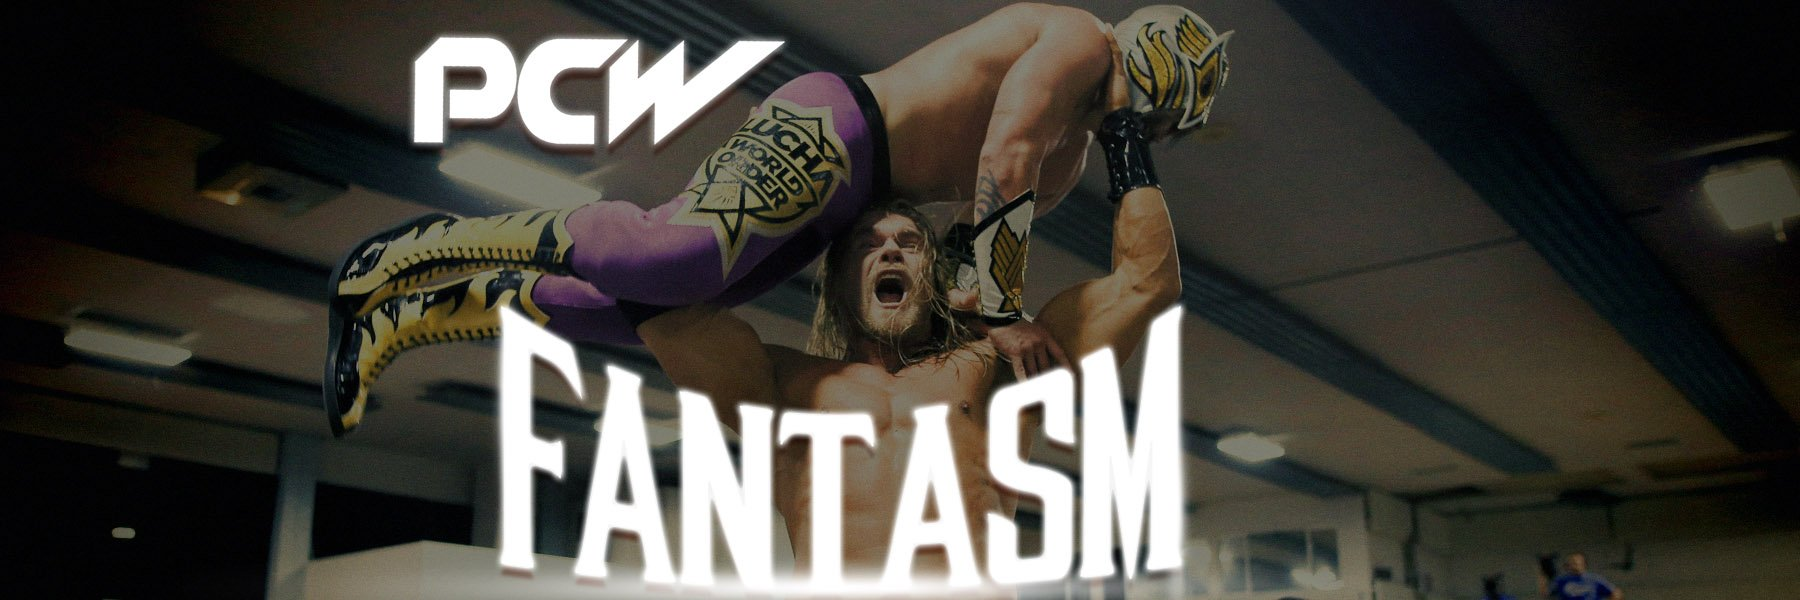 PCW ULTRA | FANTASM: Subscribe $4.99 mo. // Rent $2.99 // Buy $9.99